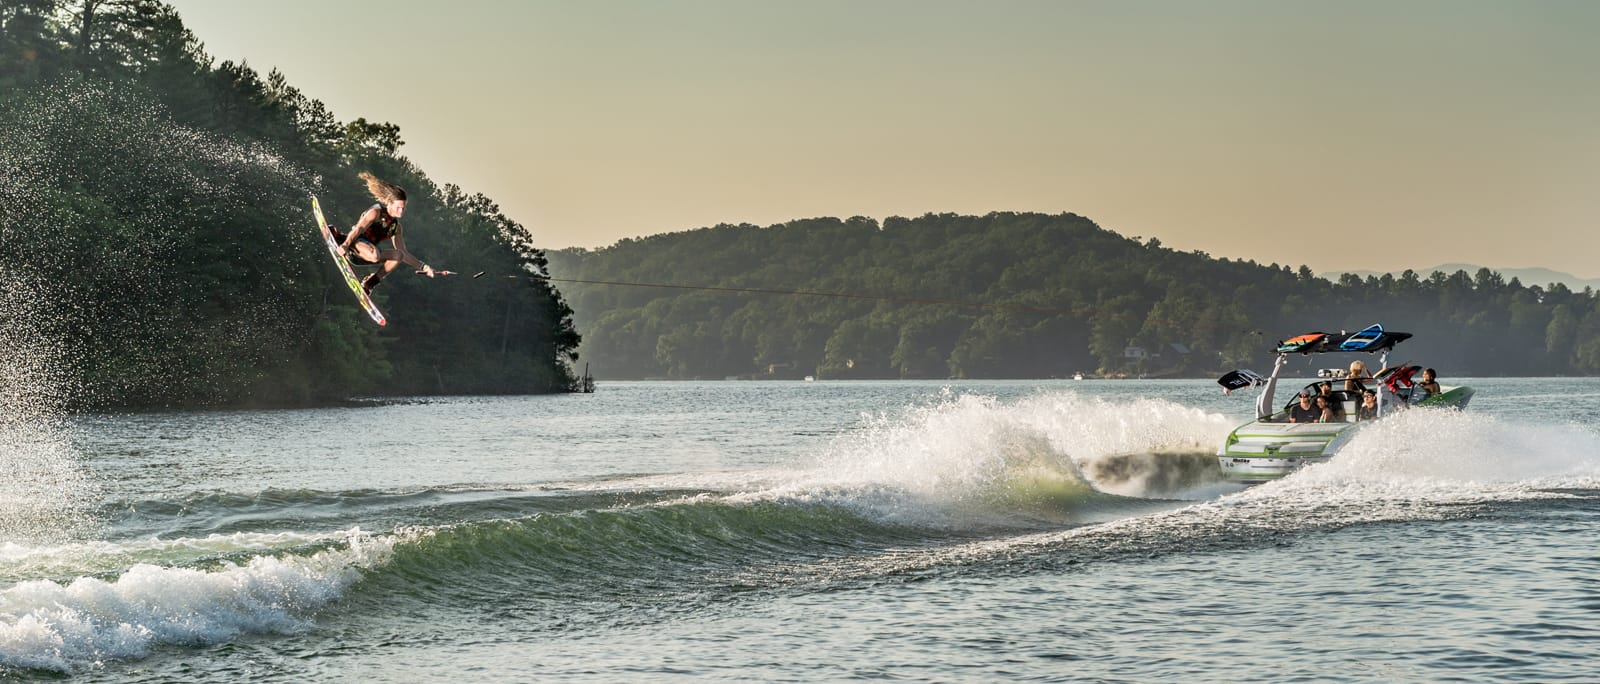 A wakeboarder catches a wave out on the water